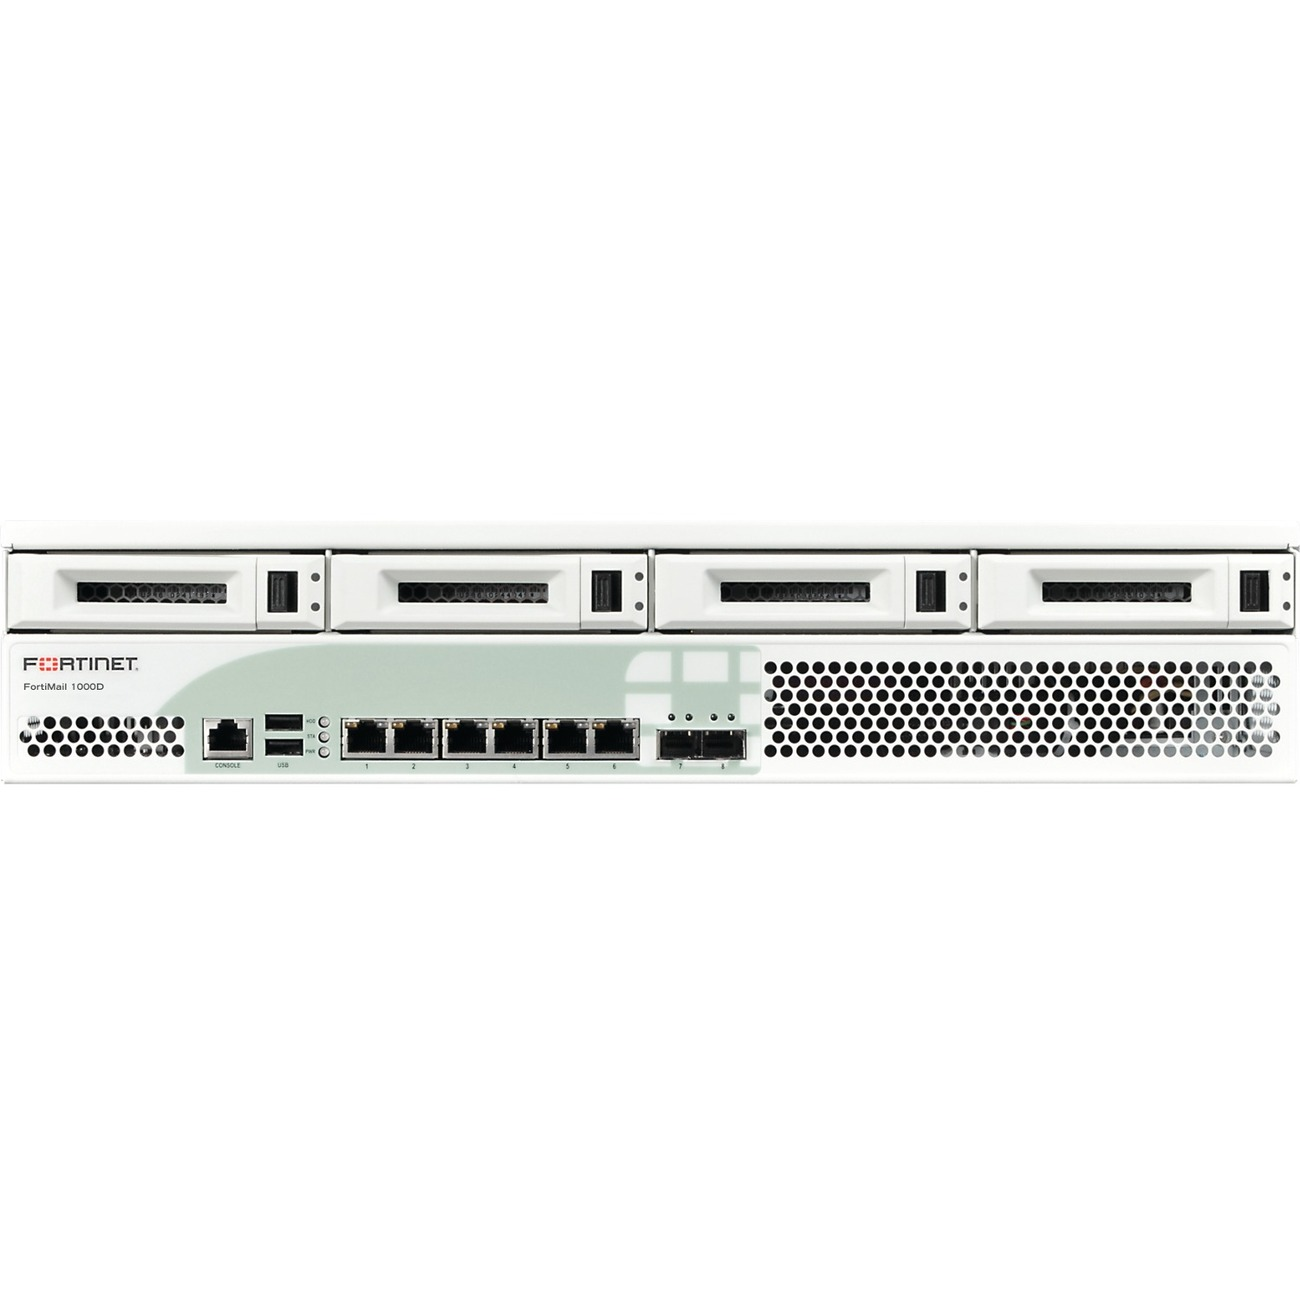 Fortinet FortiMail 1000D High Availability Firewall - 6 Port -  10/100/1000Base-T, 1000Base-X Gigabit Ethernet - 6 x RJ-45 - 2 - SFP - 2 x  SFP -